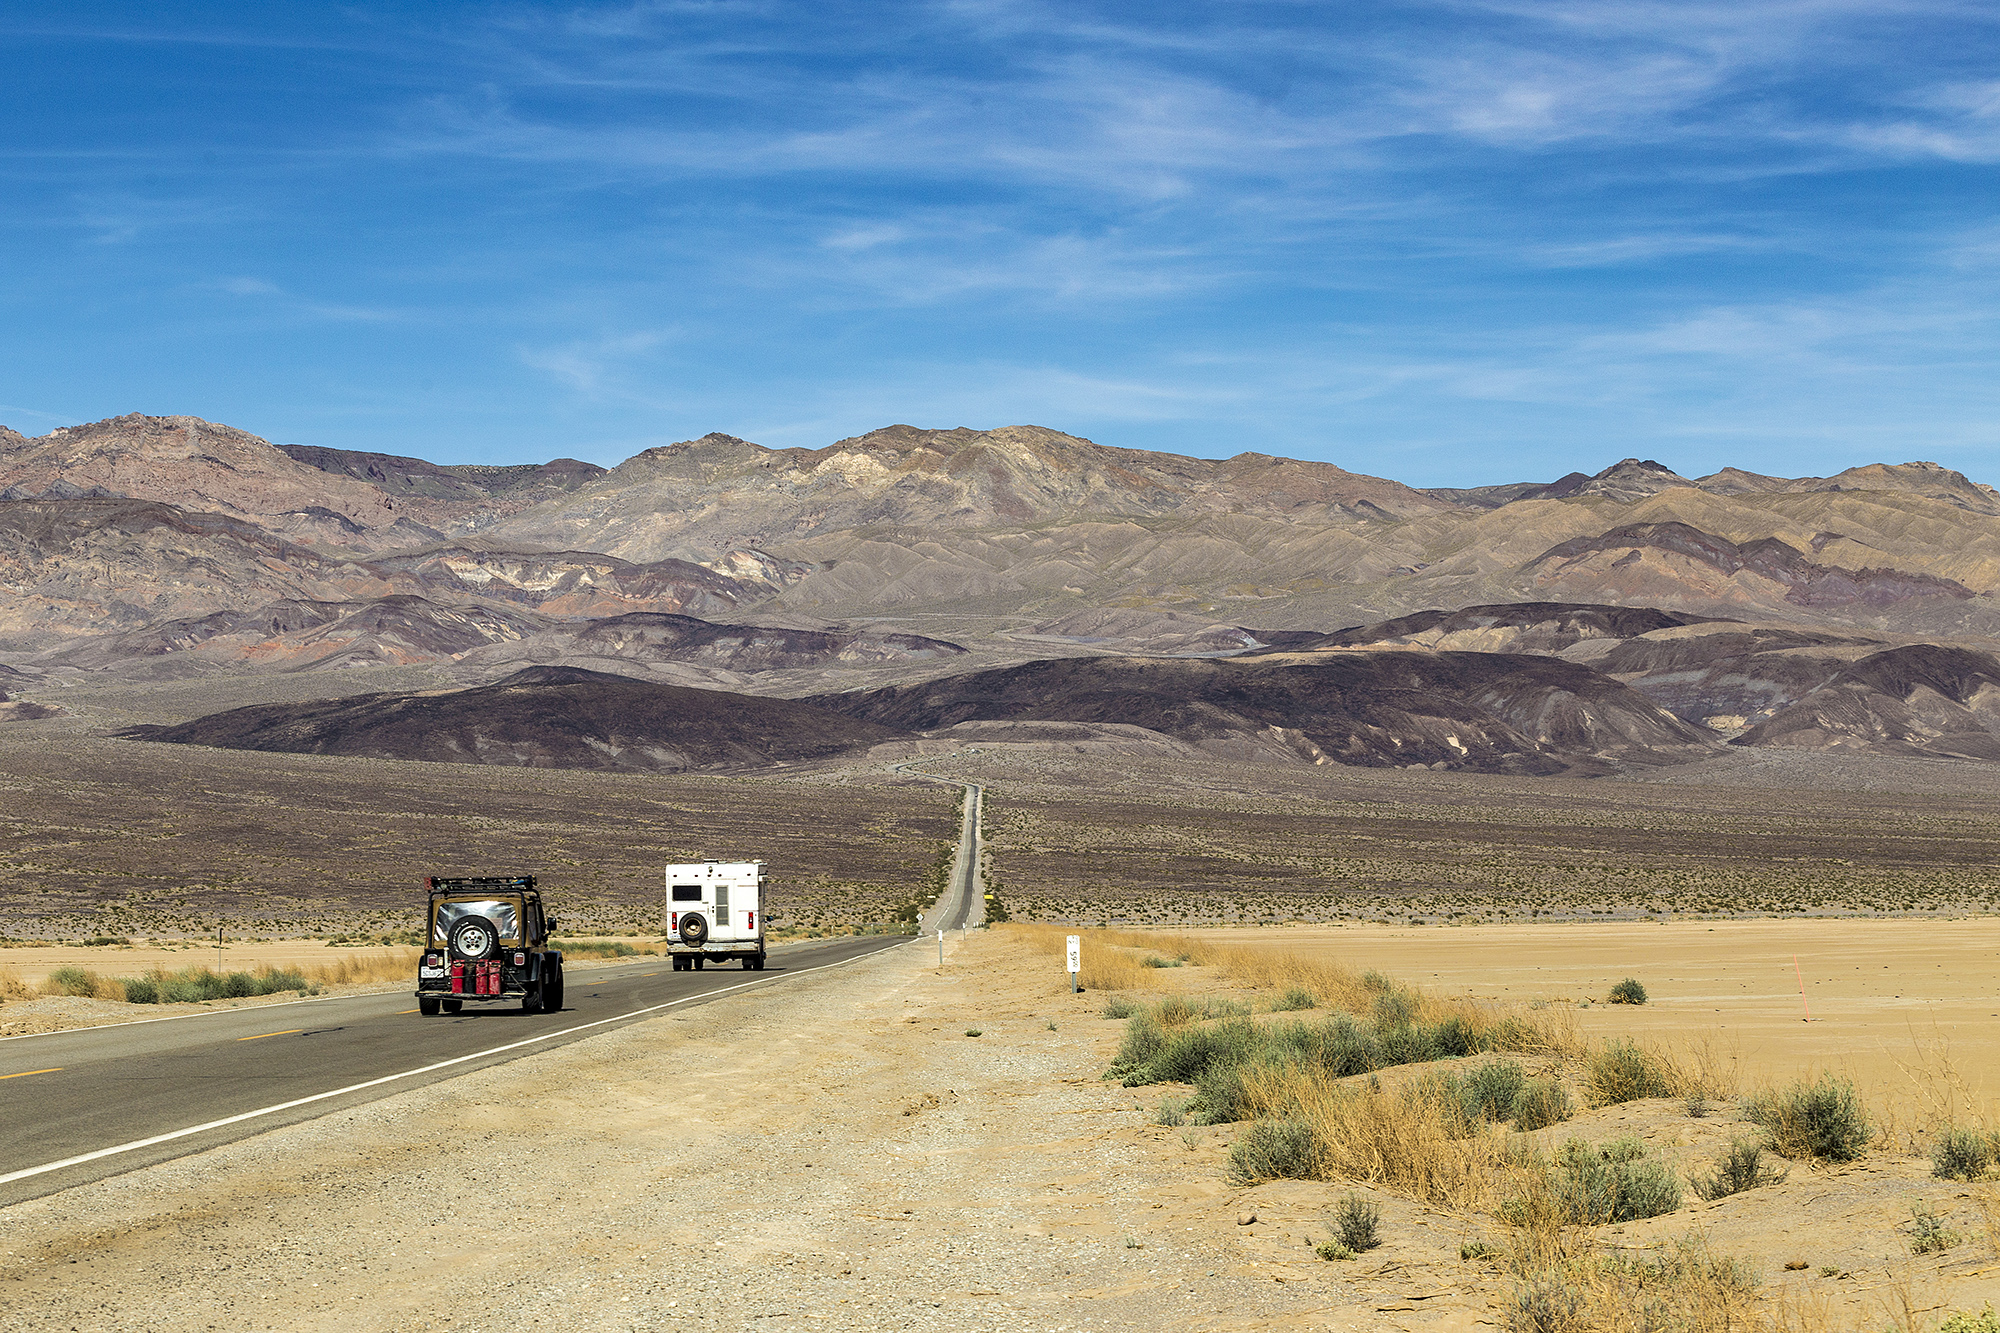 Postcard from death valley...